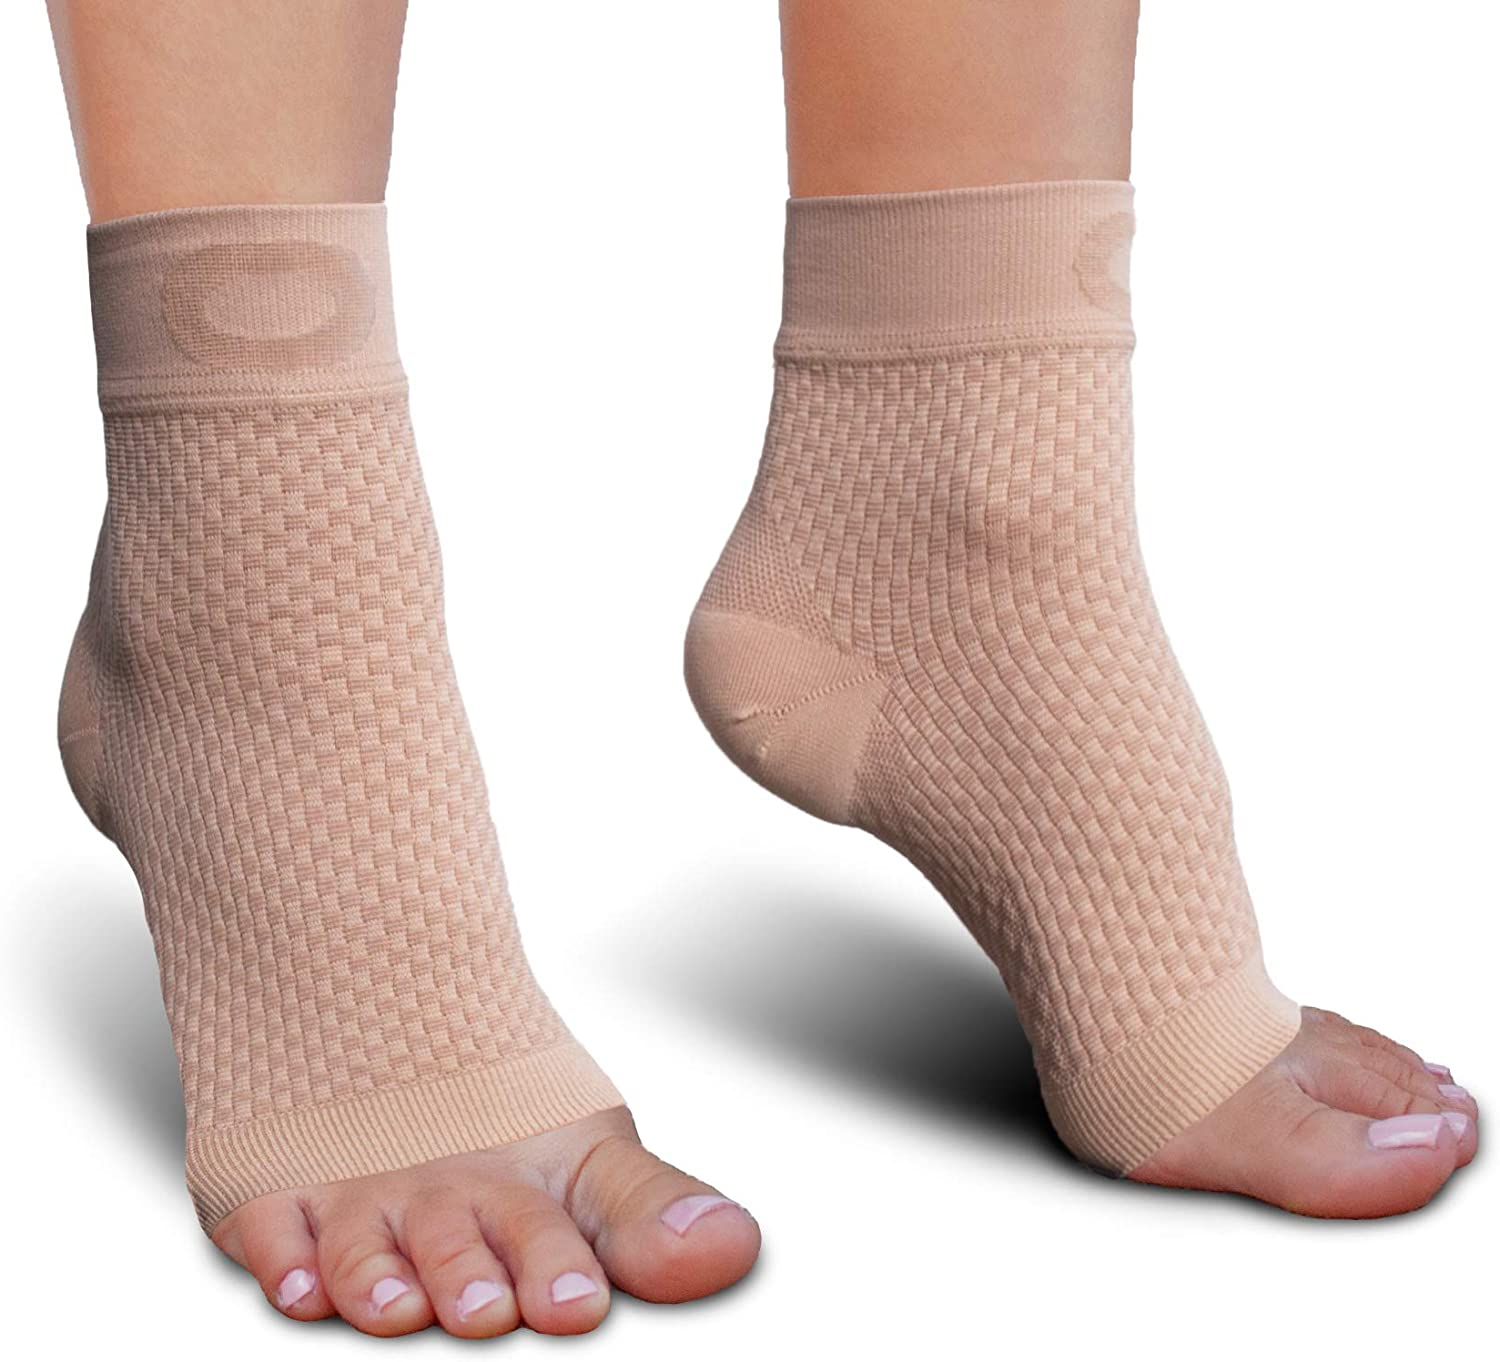 Relieves Pain Foot Compression Sleeve for Ankle Brace Support Eases Swelling Best Plantar Fasciitis Compression Socks Foot Care for Arch Support Women /& Men X-Large, Nude